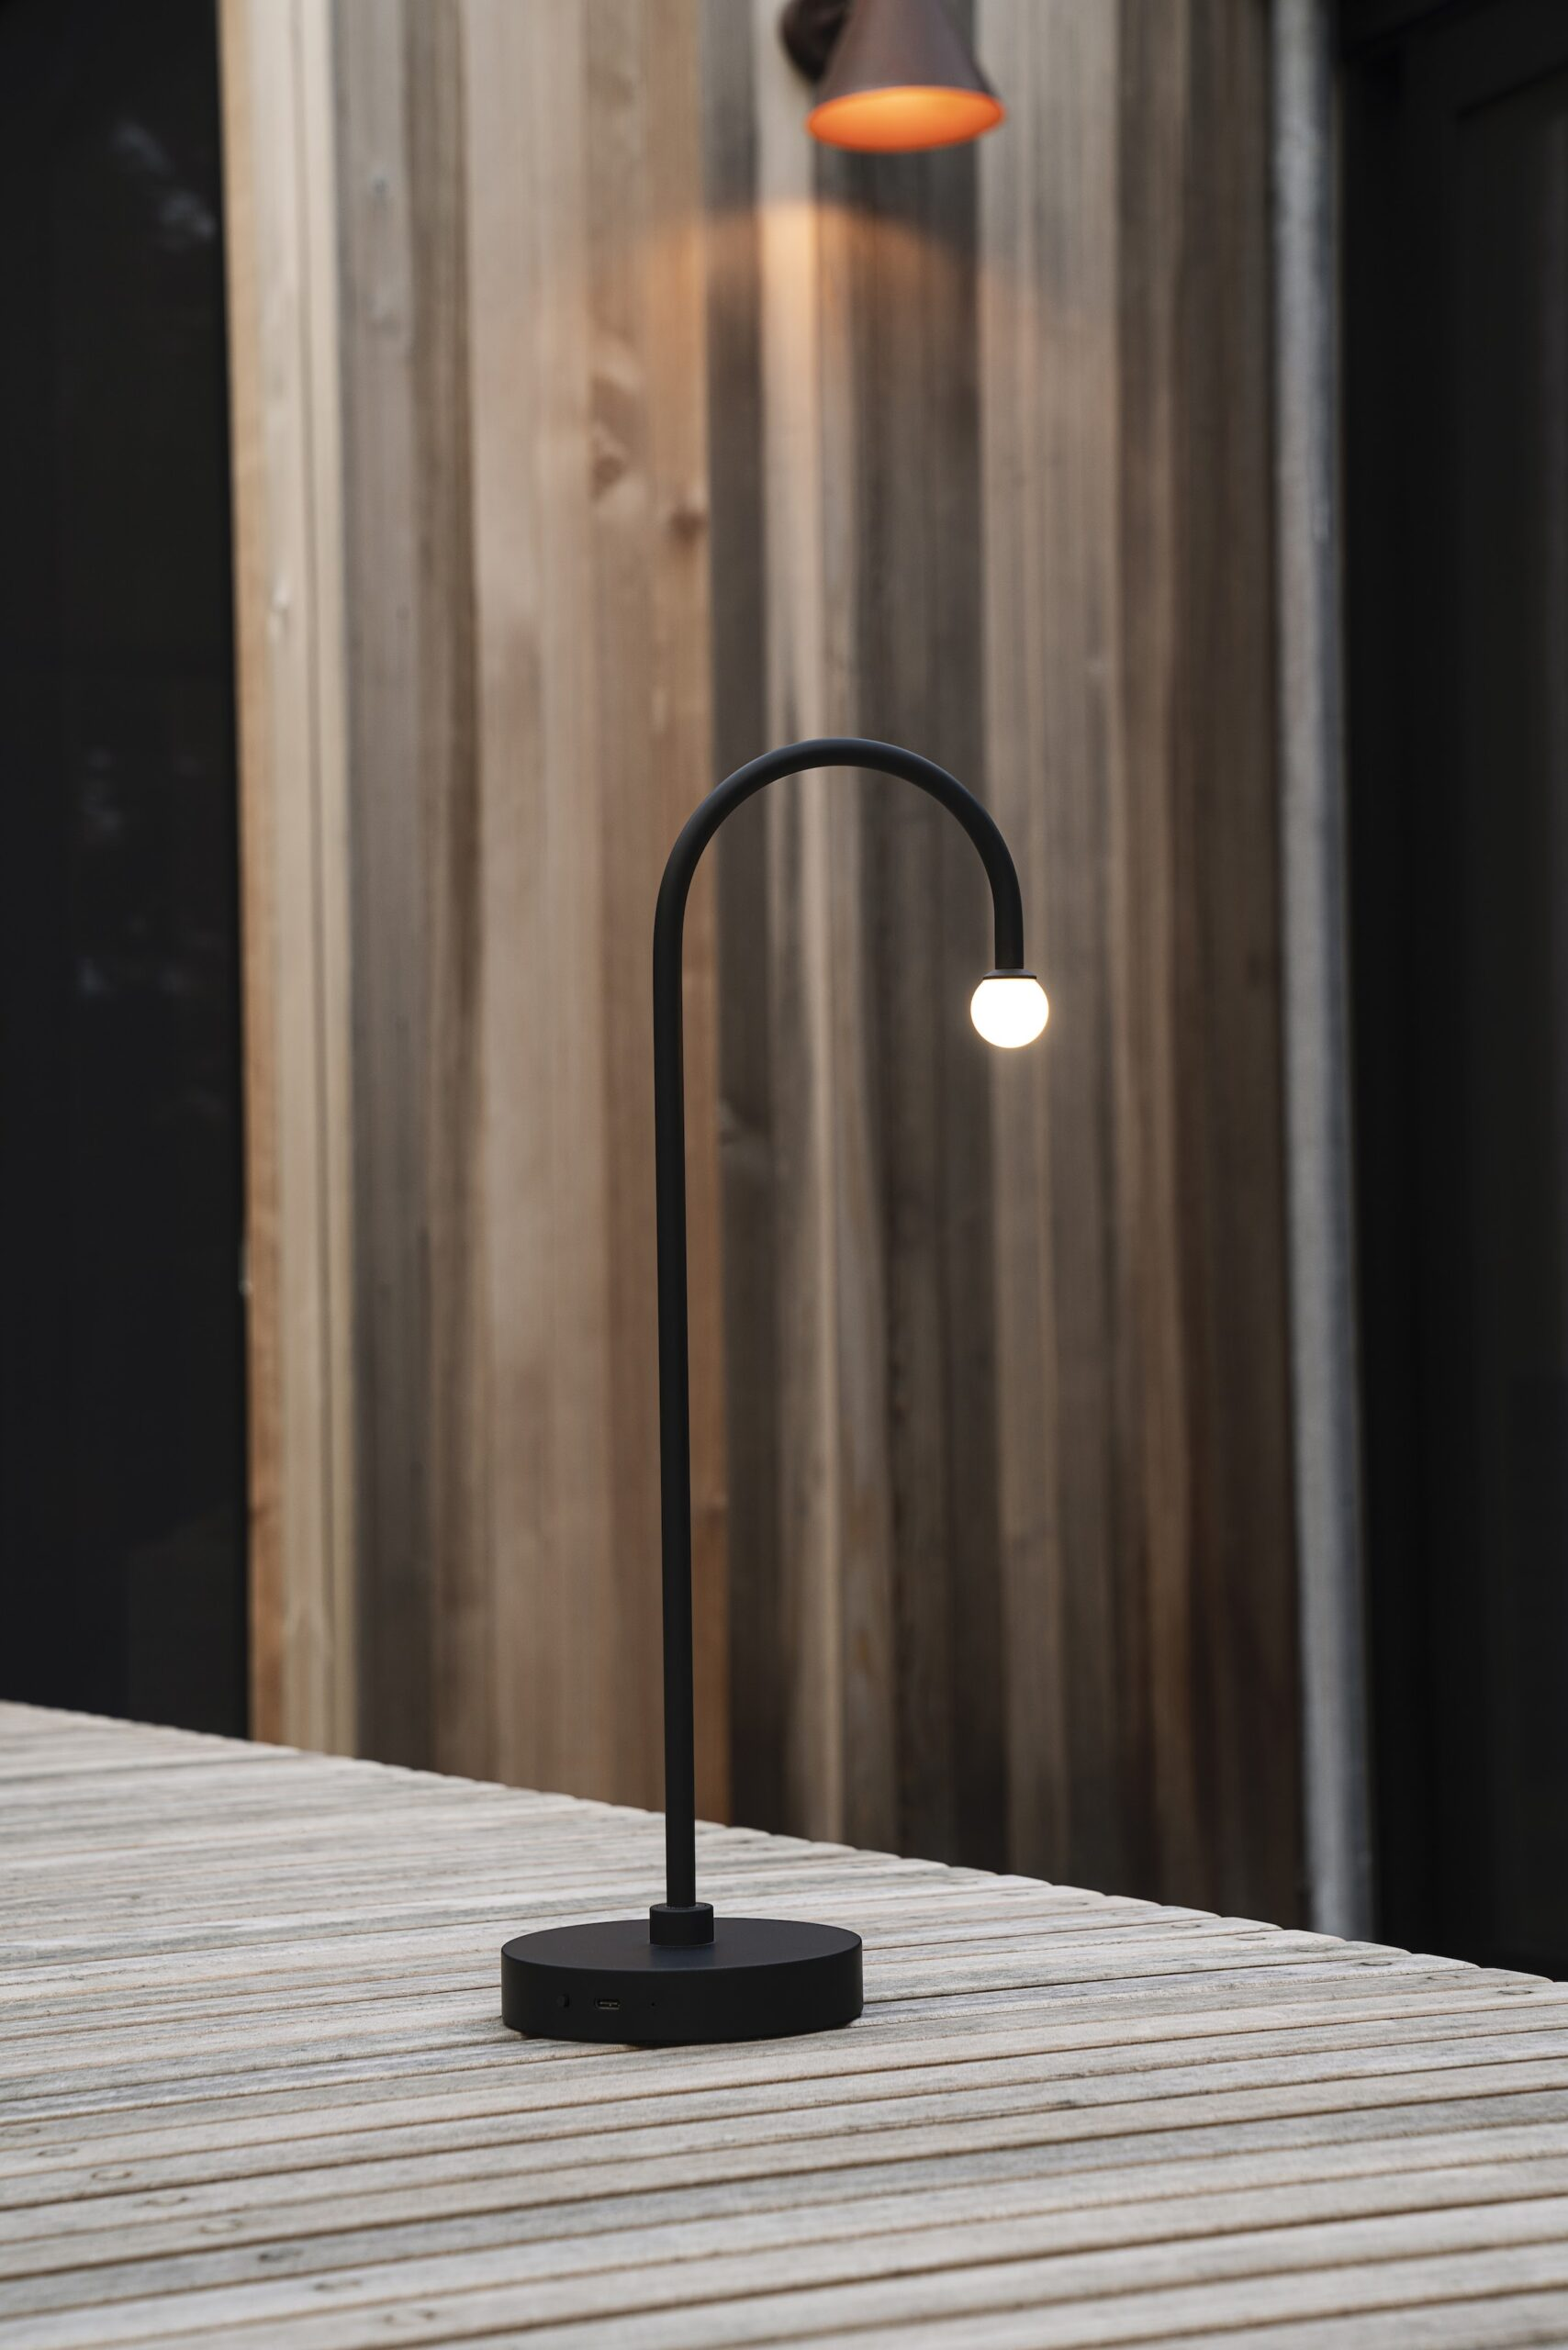 Thin black table lamp with small hanging bulb. Minimalist furniture.